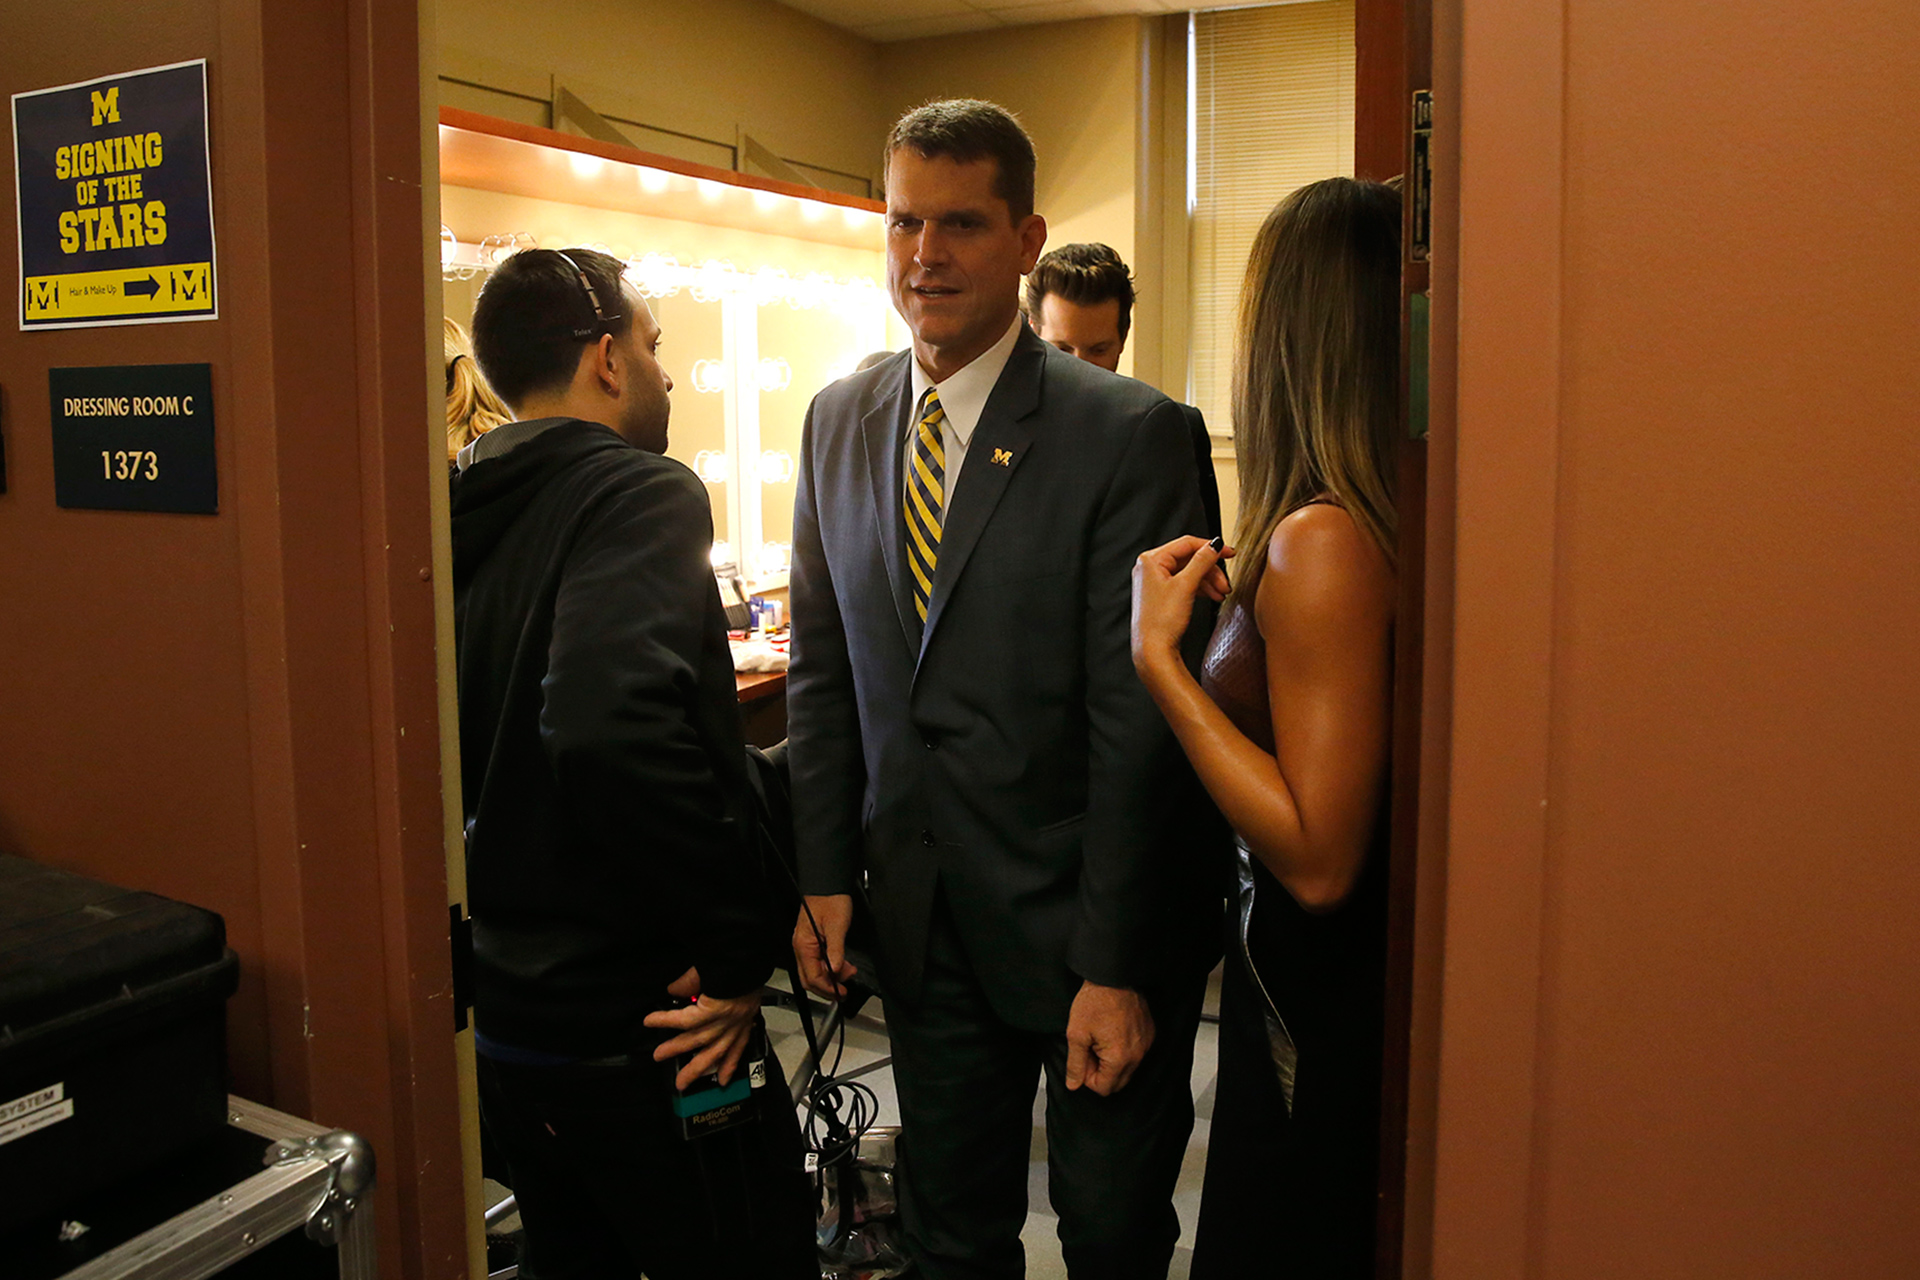 Coach Harbaugh mingles backstage.